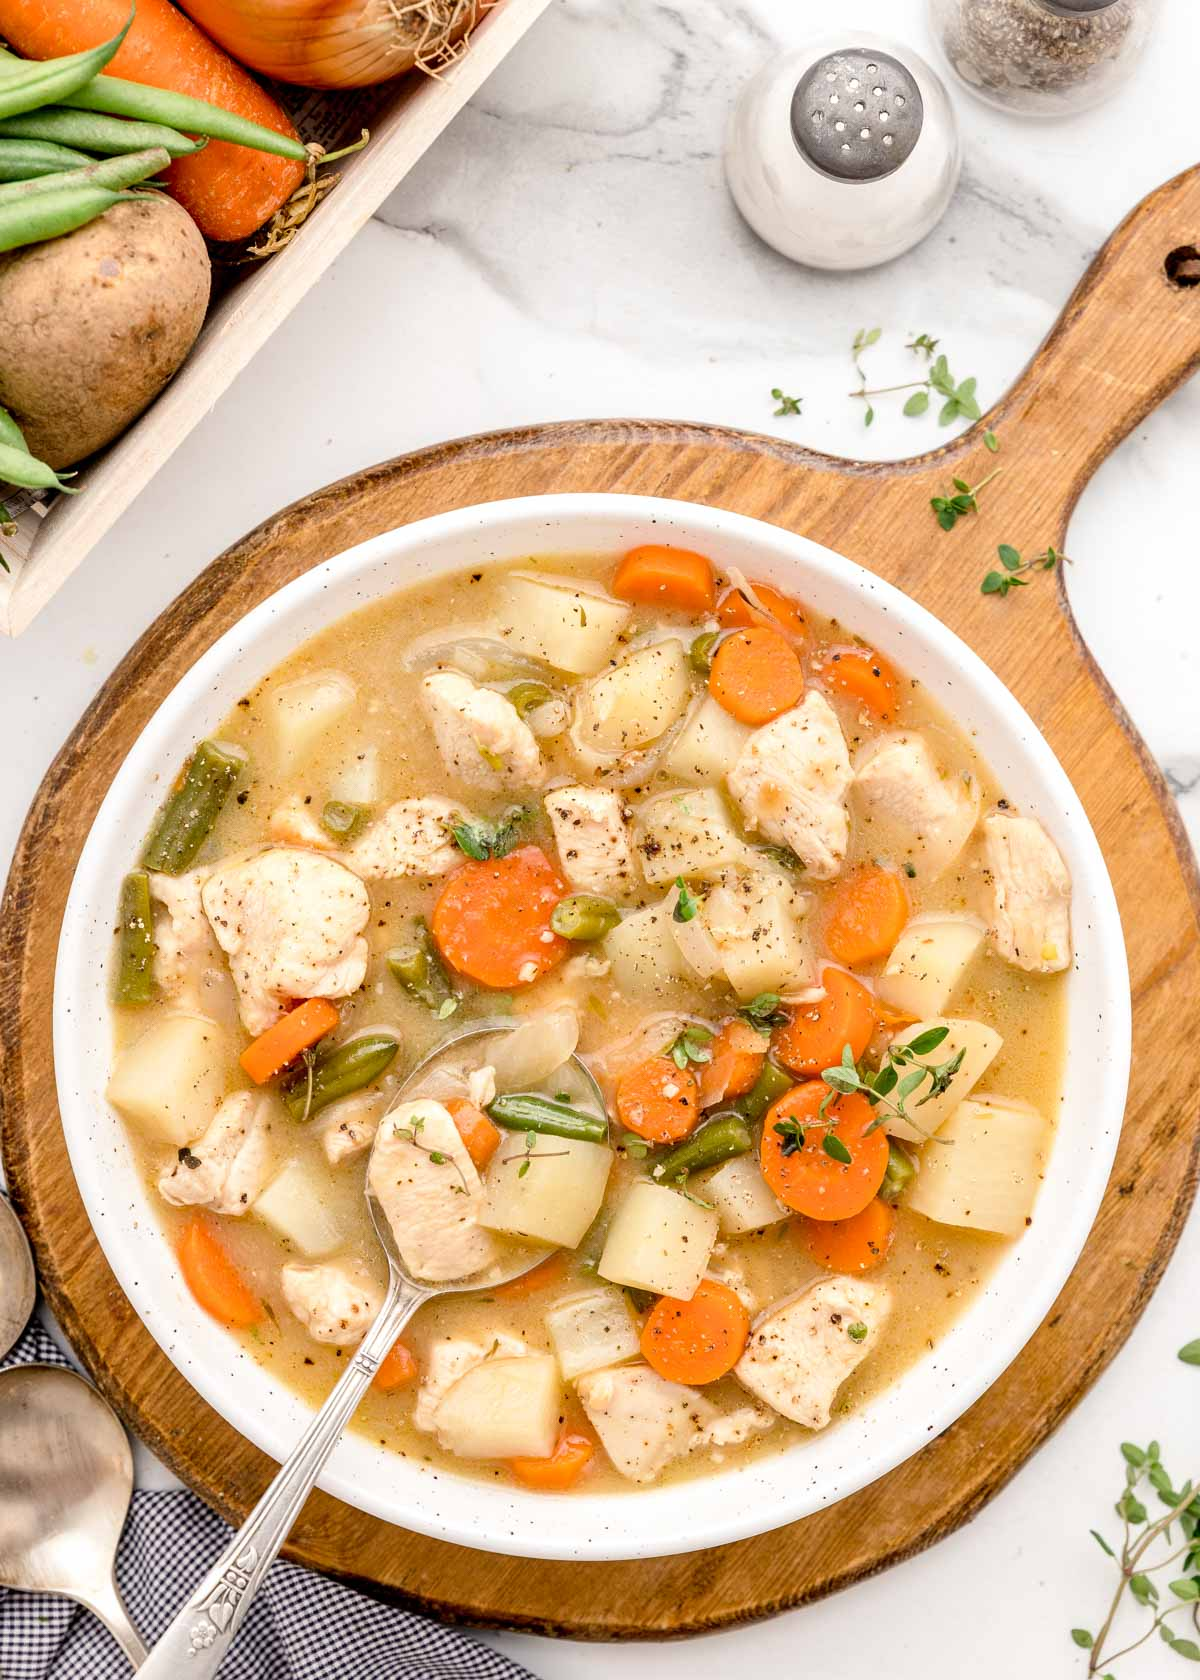 A white bowl full of chicken vegetable stew